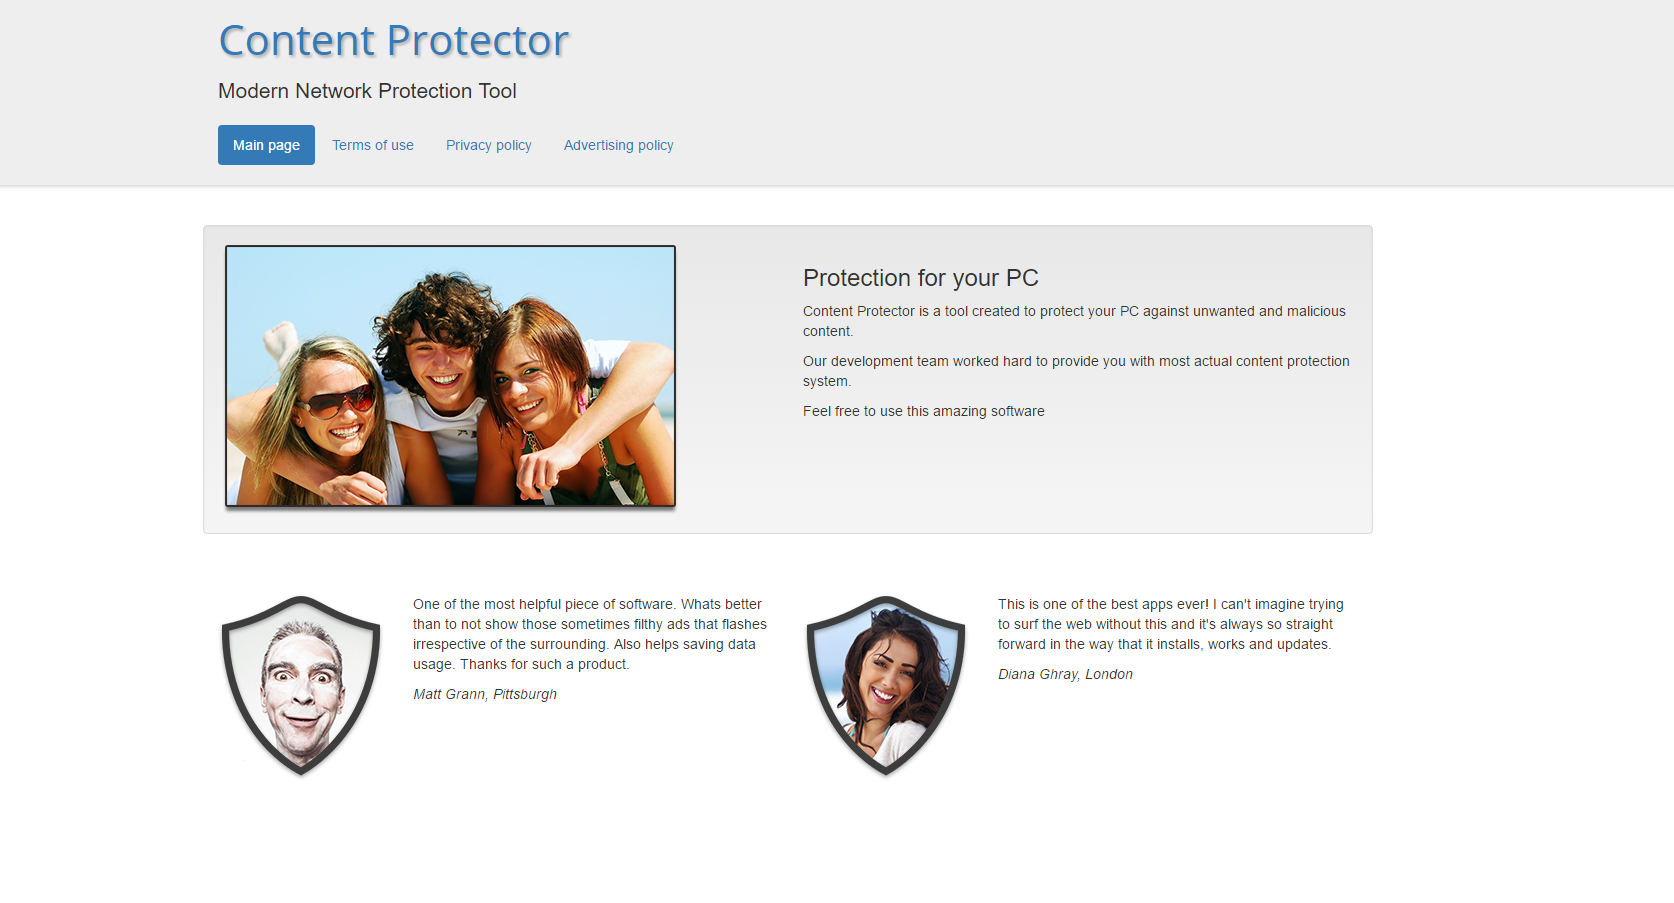 Content Protector Ads